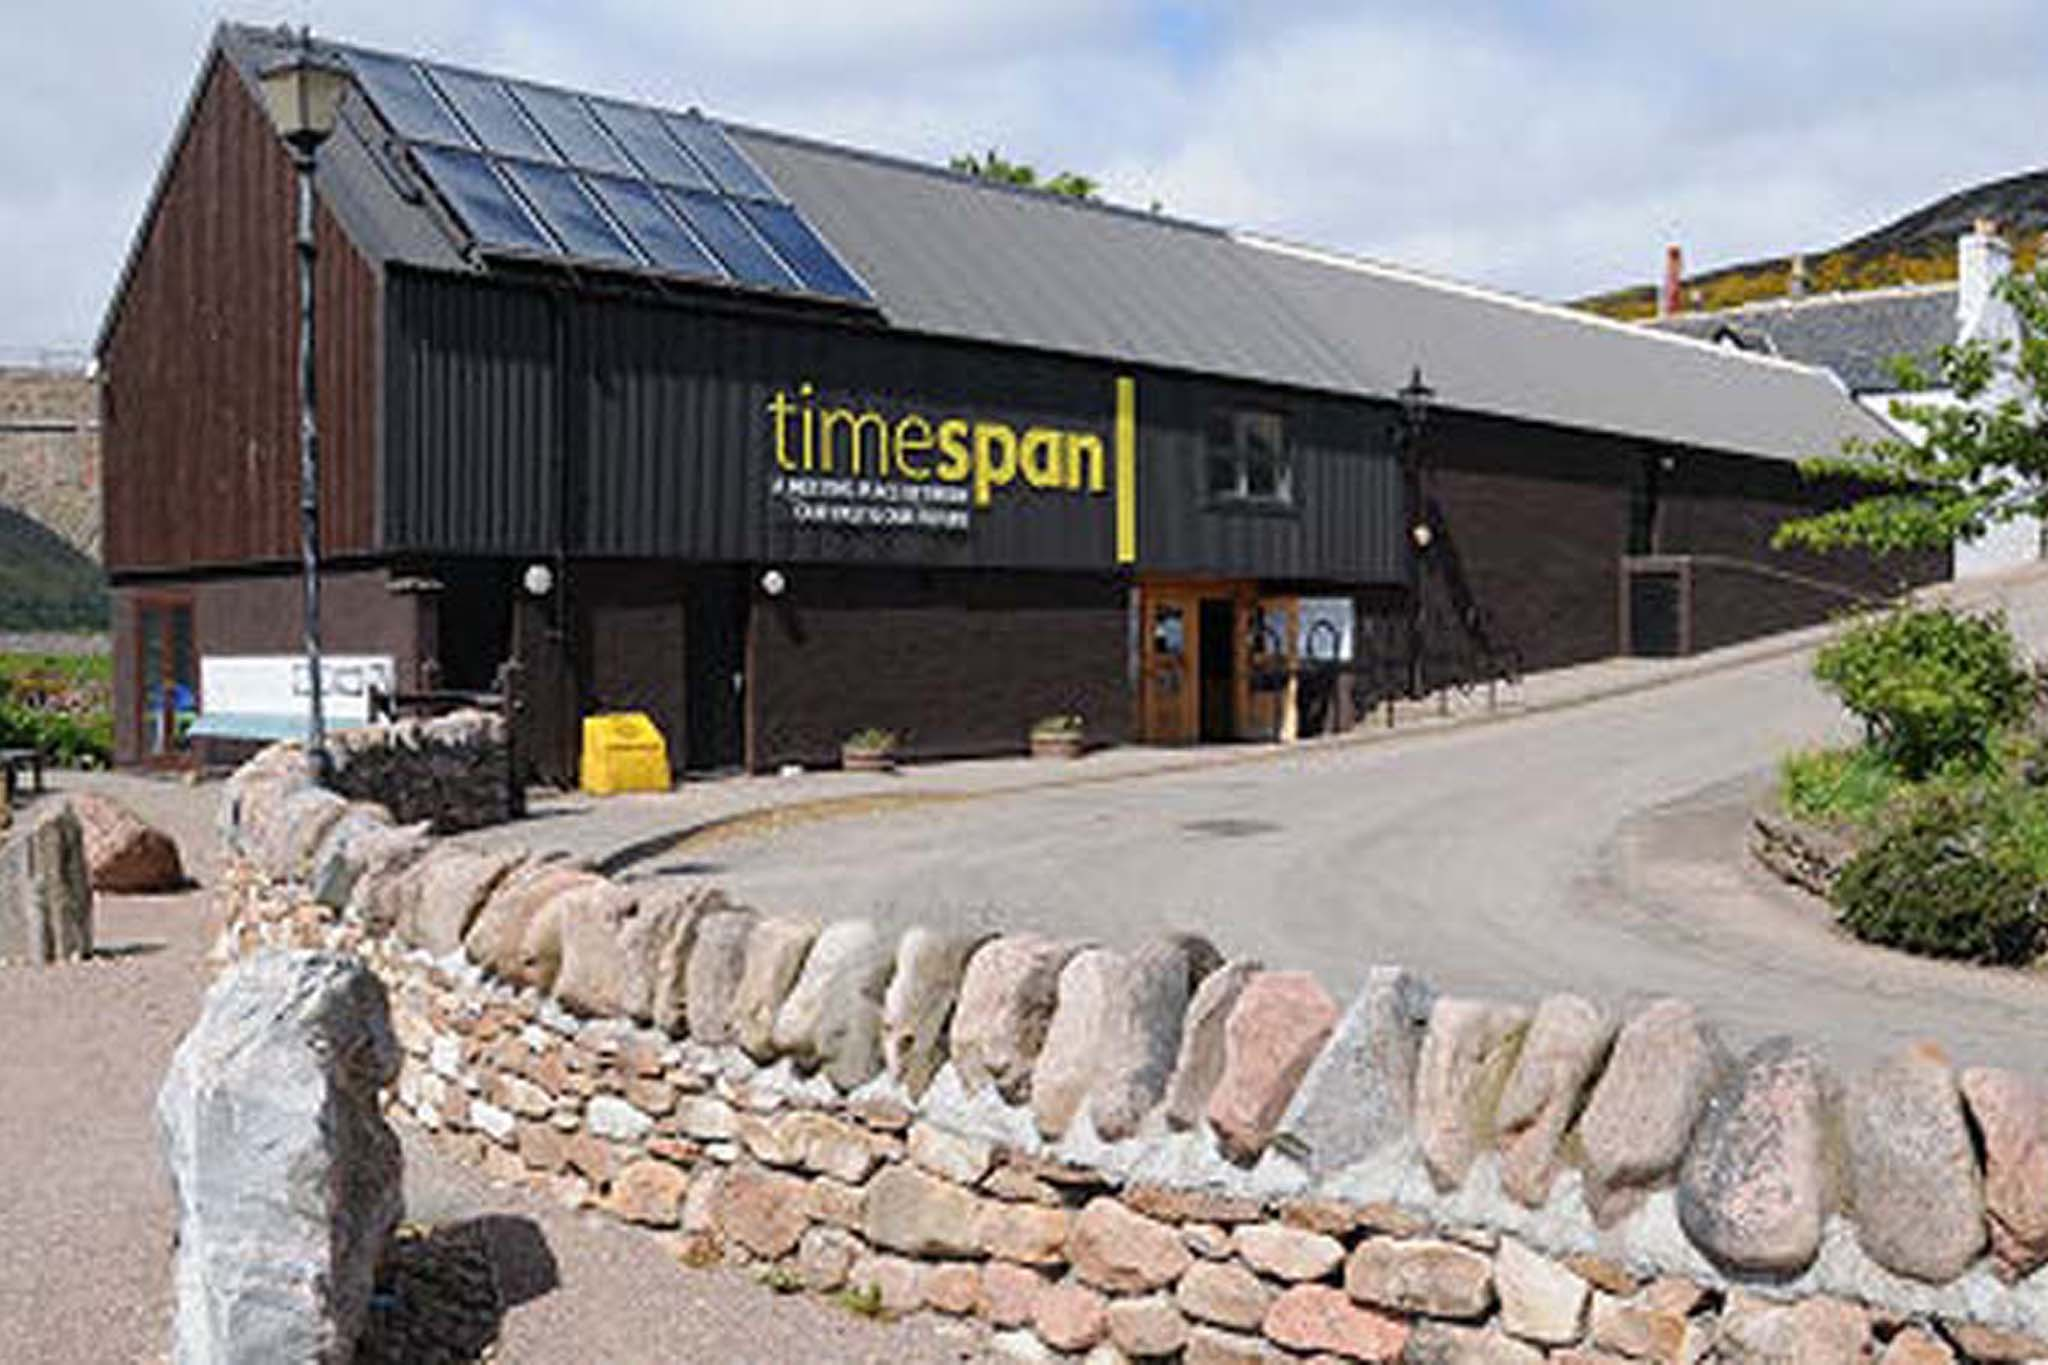 Timespan Museum and Art Gallery